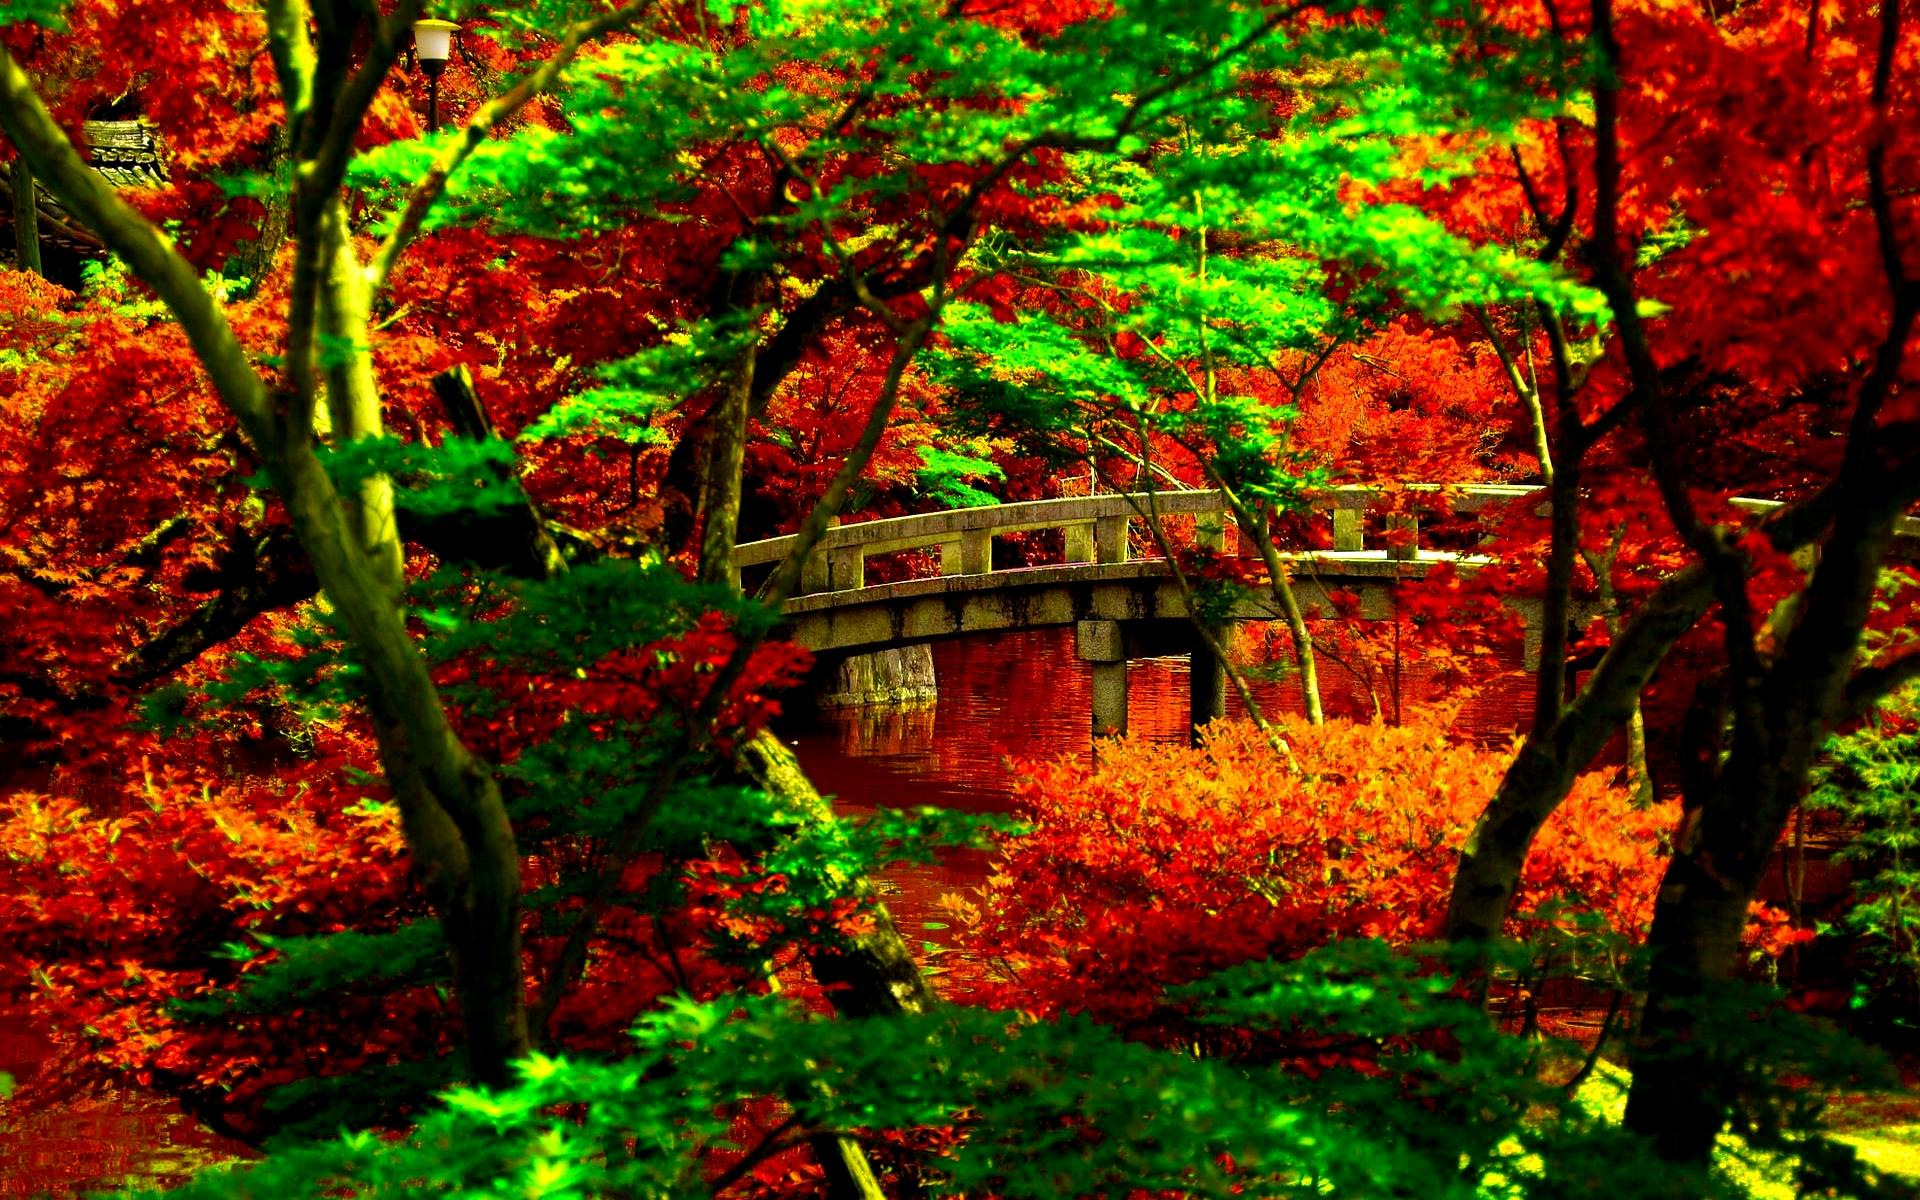 [45+] Japanese Garden HD Wallpaper On WallpaperSafari